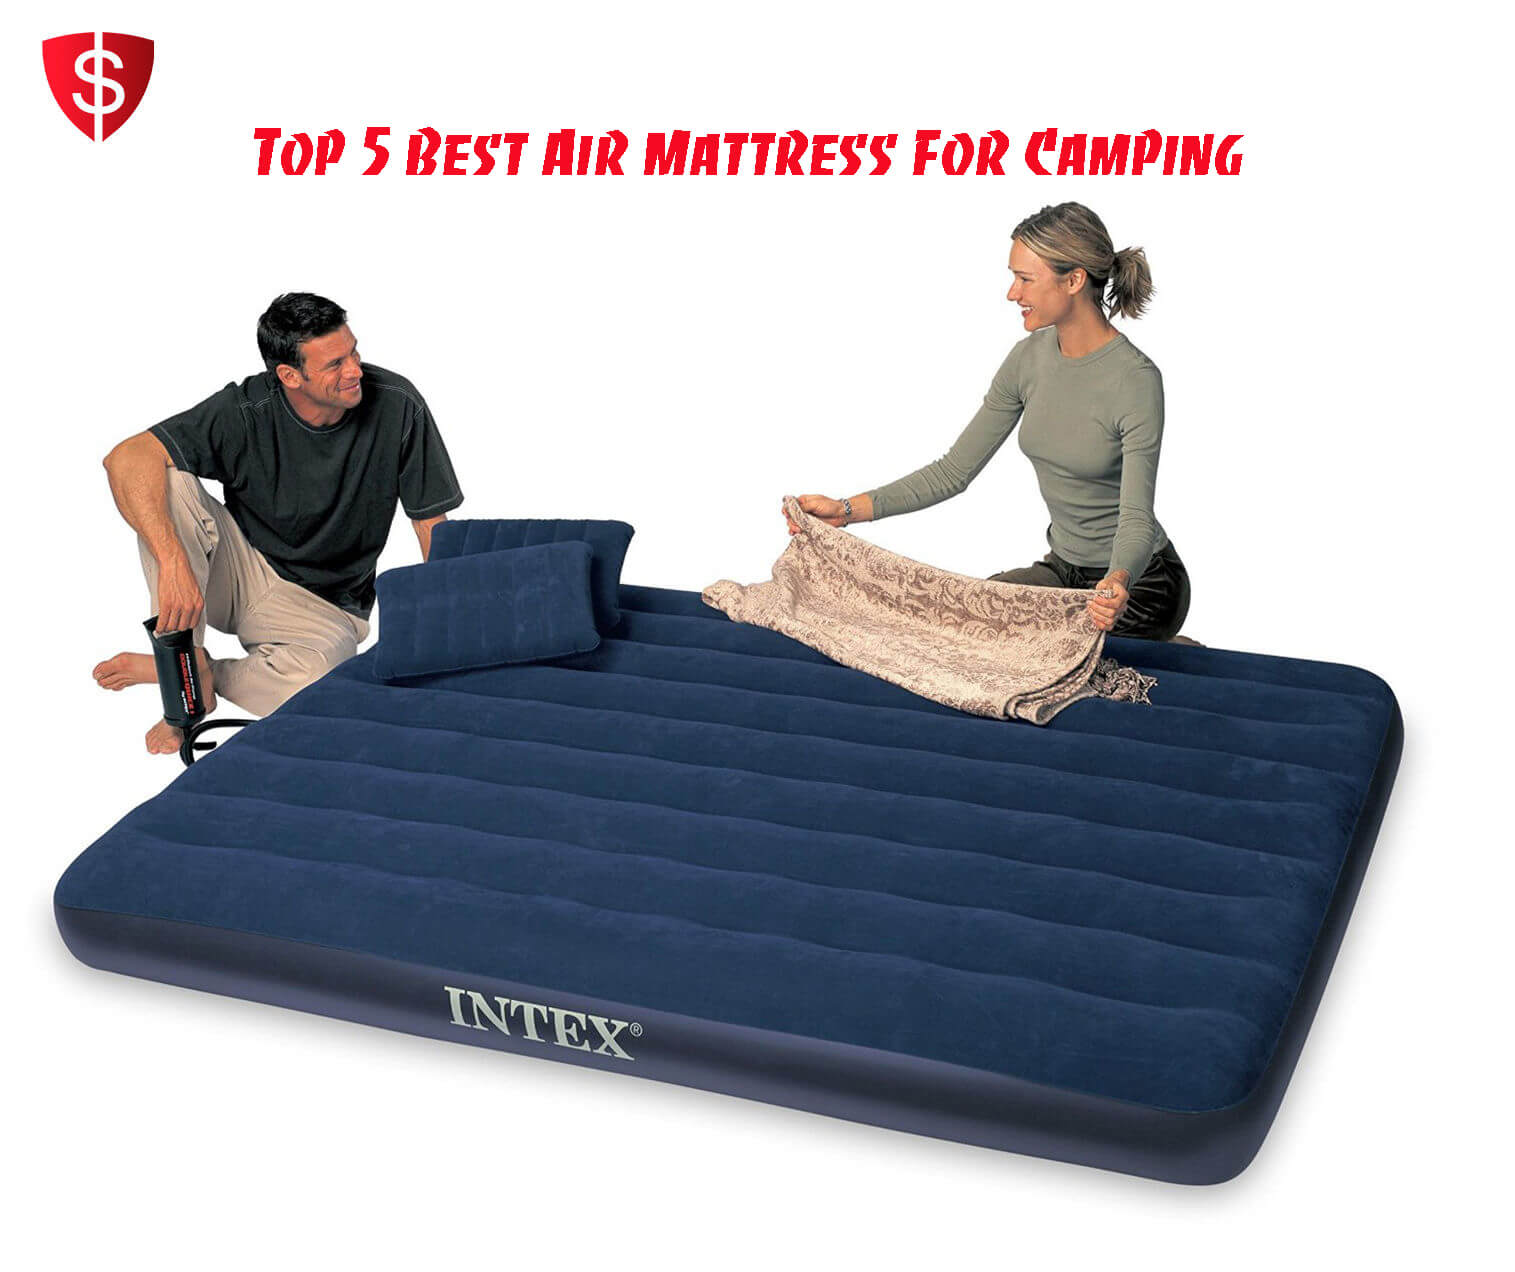 Camping Aero Bed Top 5 The Best Air Mattress For The Camping Community Counts